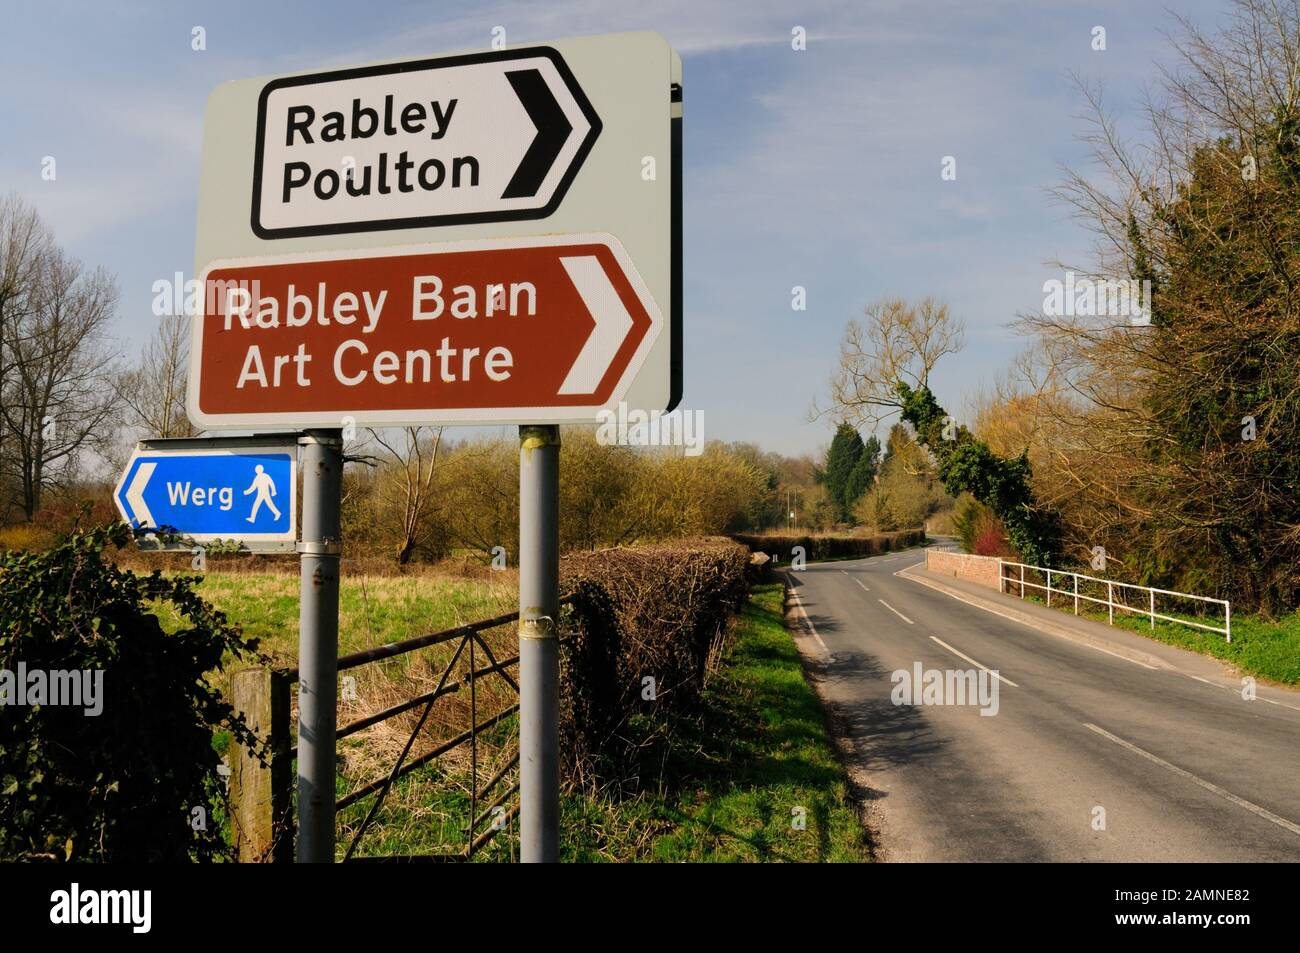 Road sign at a junction on the Mildenhall road near Marlborough, Wiltshire. Stock Photo